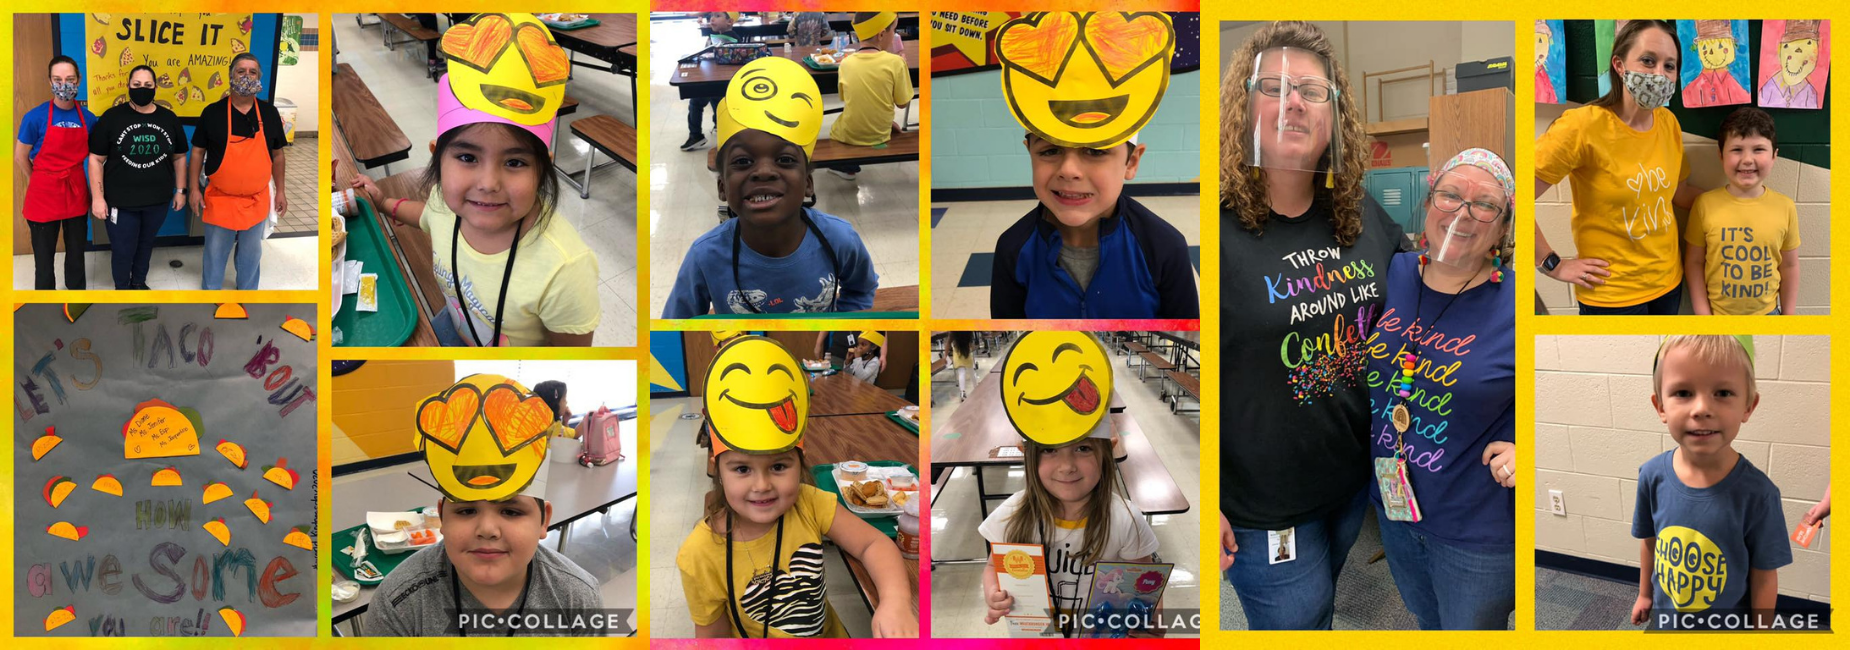 collage of pictures of students wearing smiley emoji headbands and kind shirts